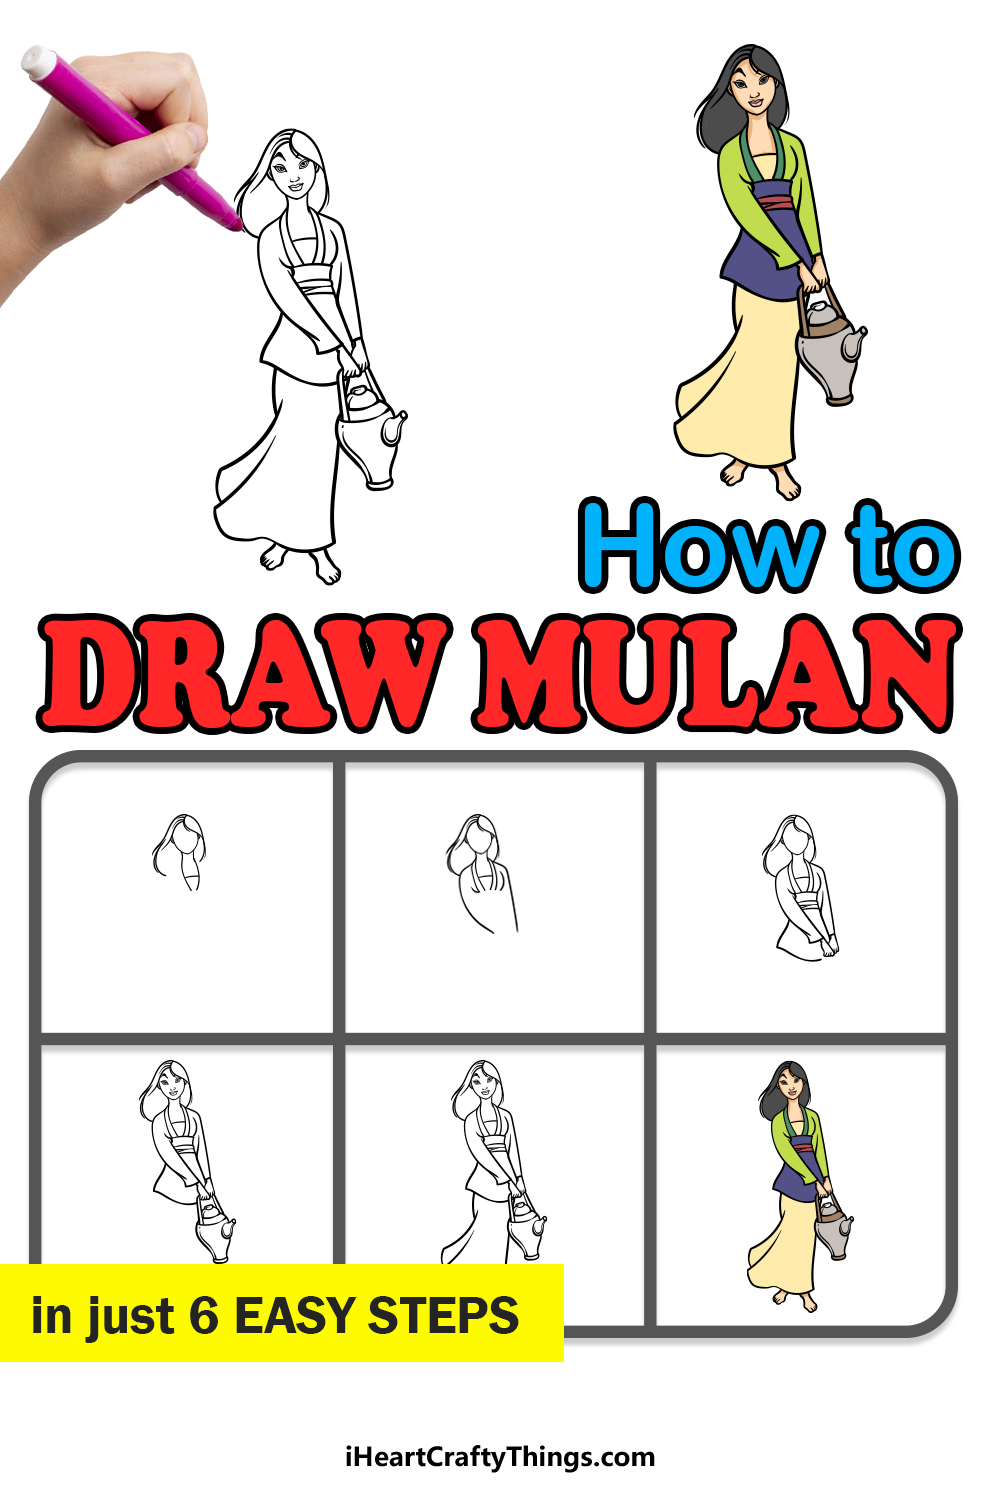 how to draw Mulan in 6 easy steps